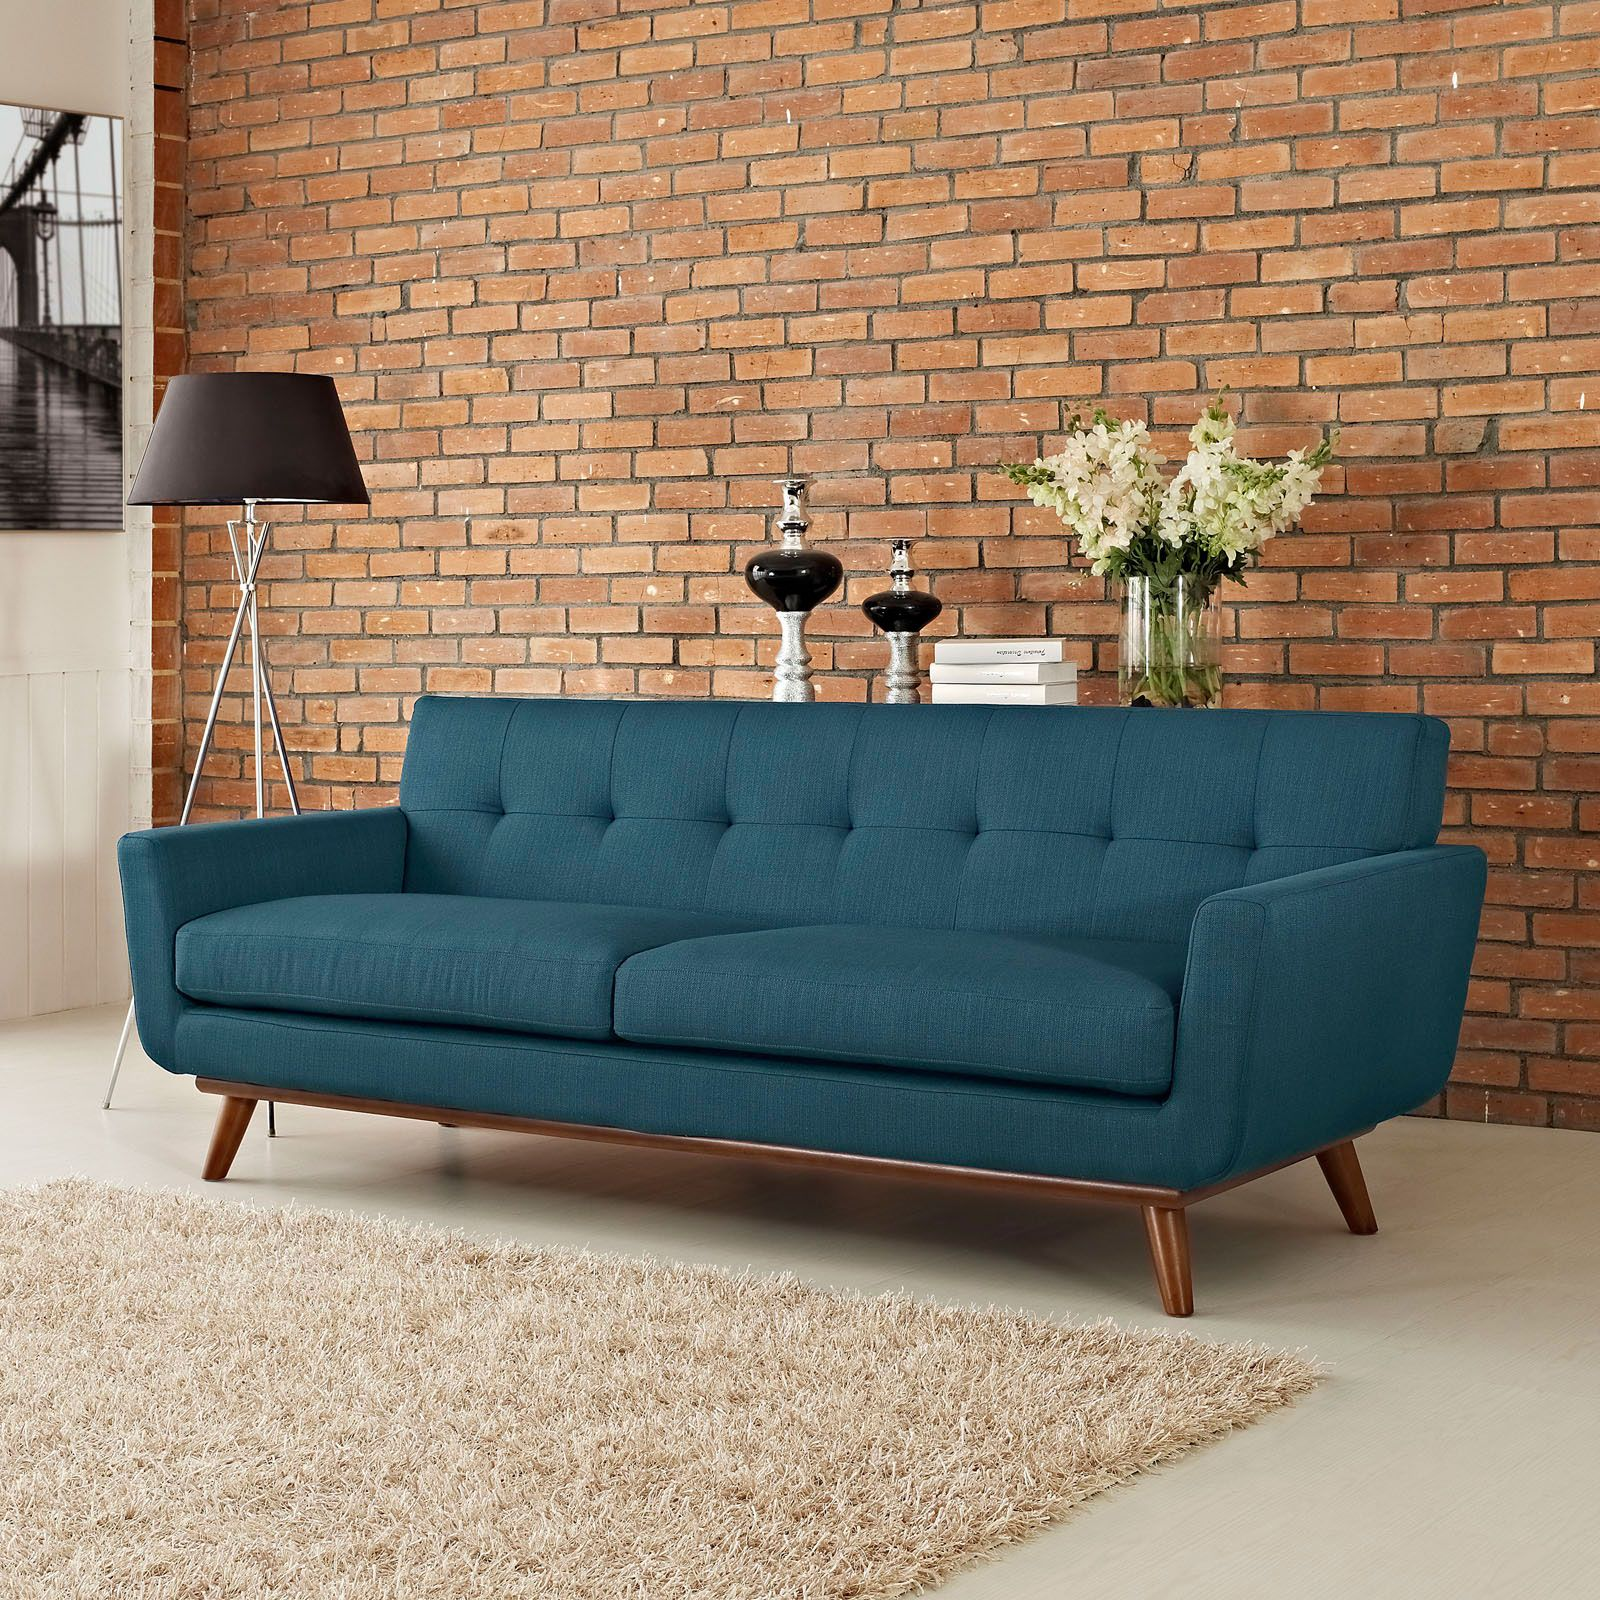 Spiers Sofa Review Leather Cleaner Singapore In Teal Home Sweet